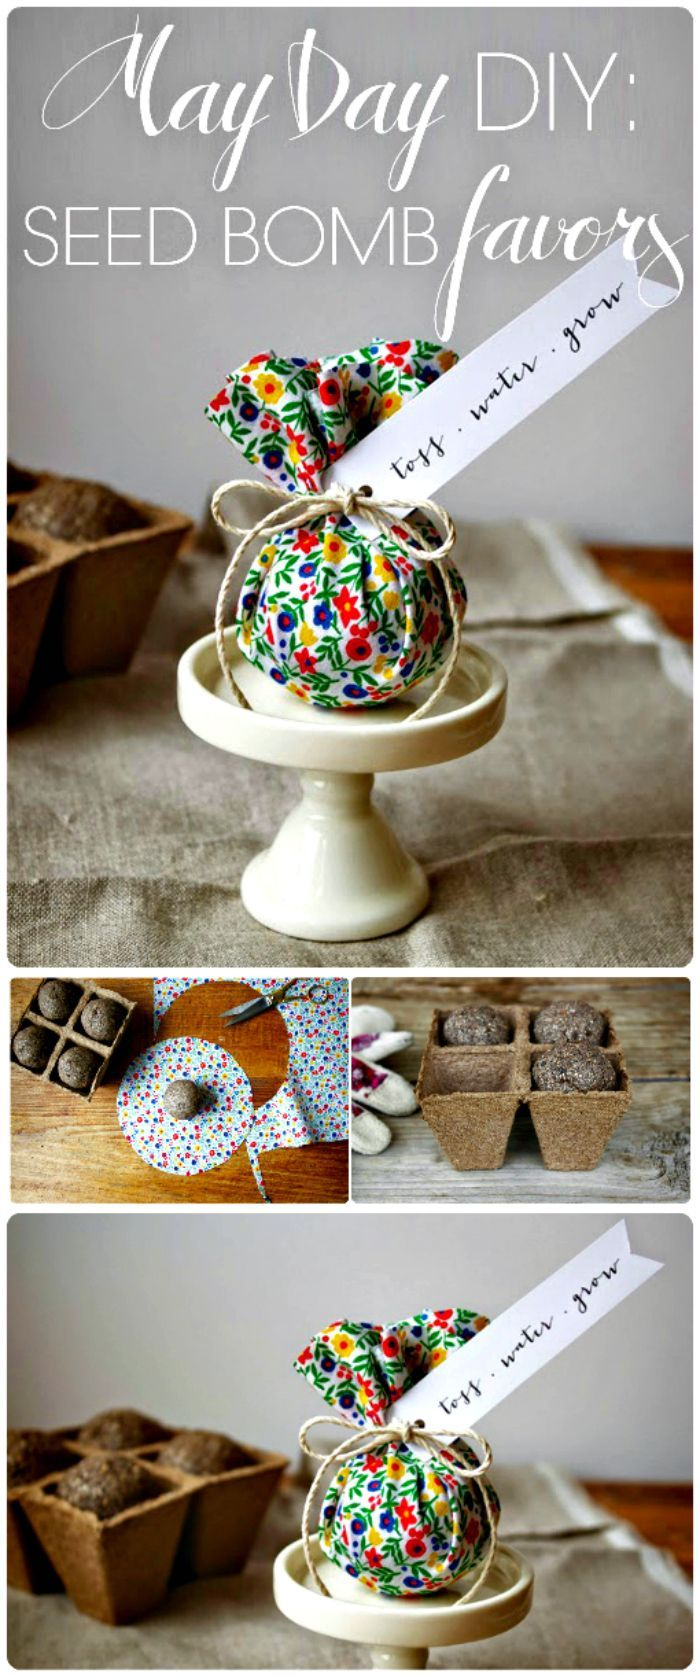 240 Easy Craft Ideas To Make And Sell Crafts Diy Crafts To Sell